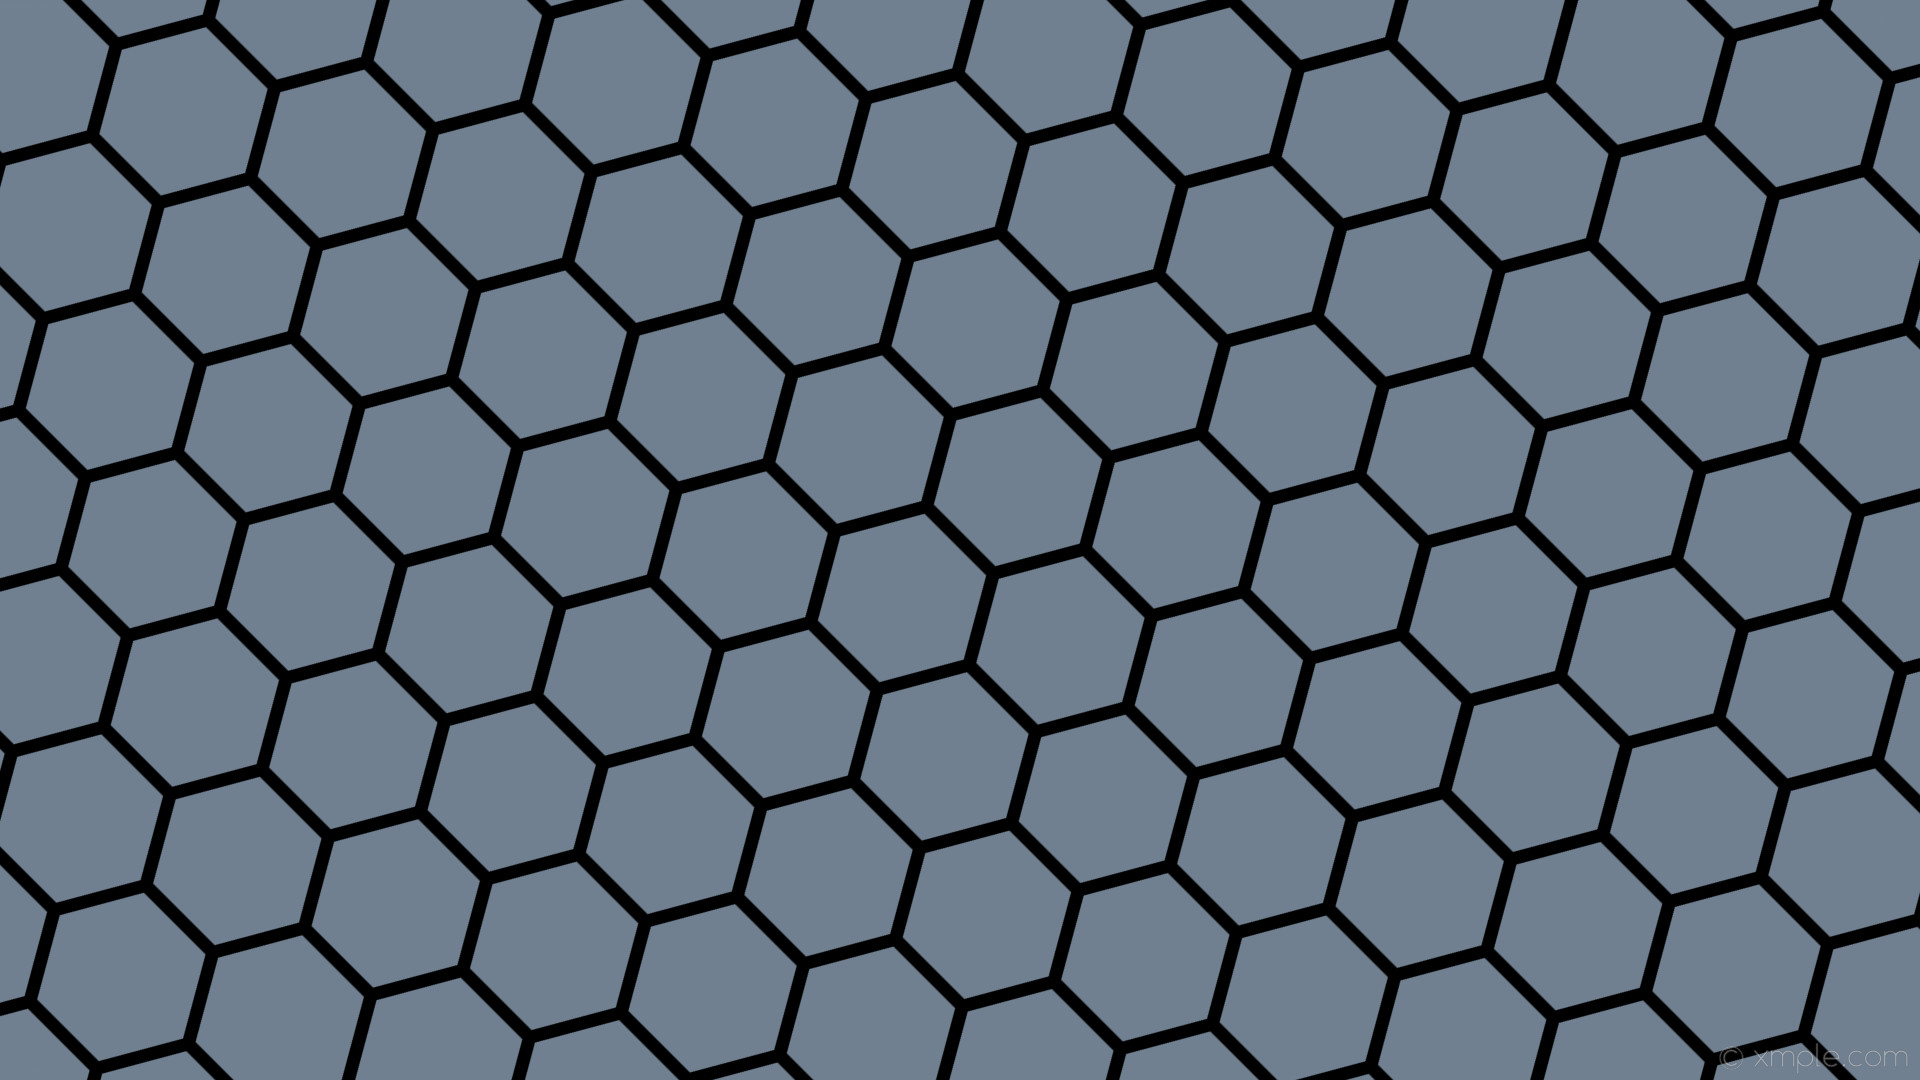 wallpaper beehive honeycomb black hexagon grey slate gray #708090 #000000  diagonal 45° 13px